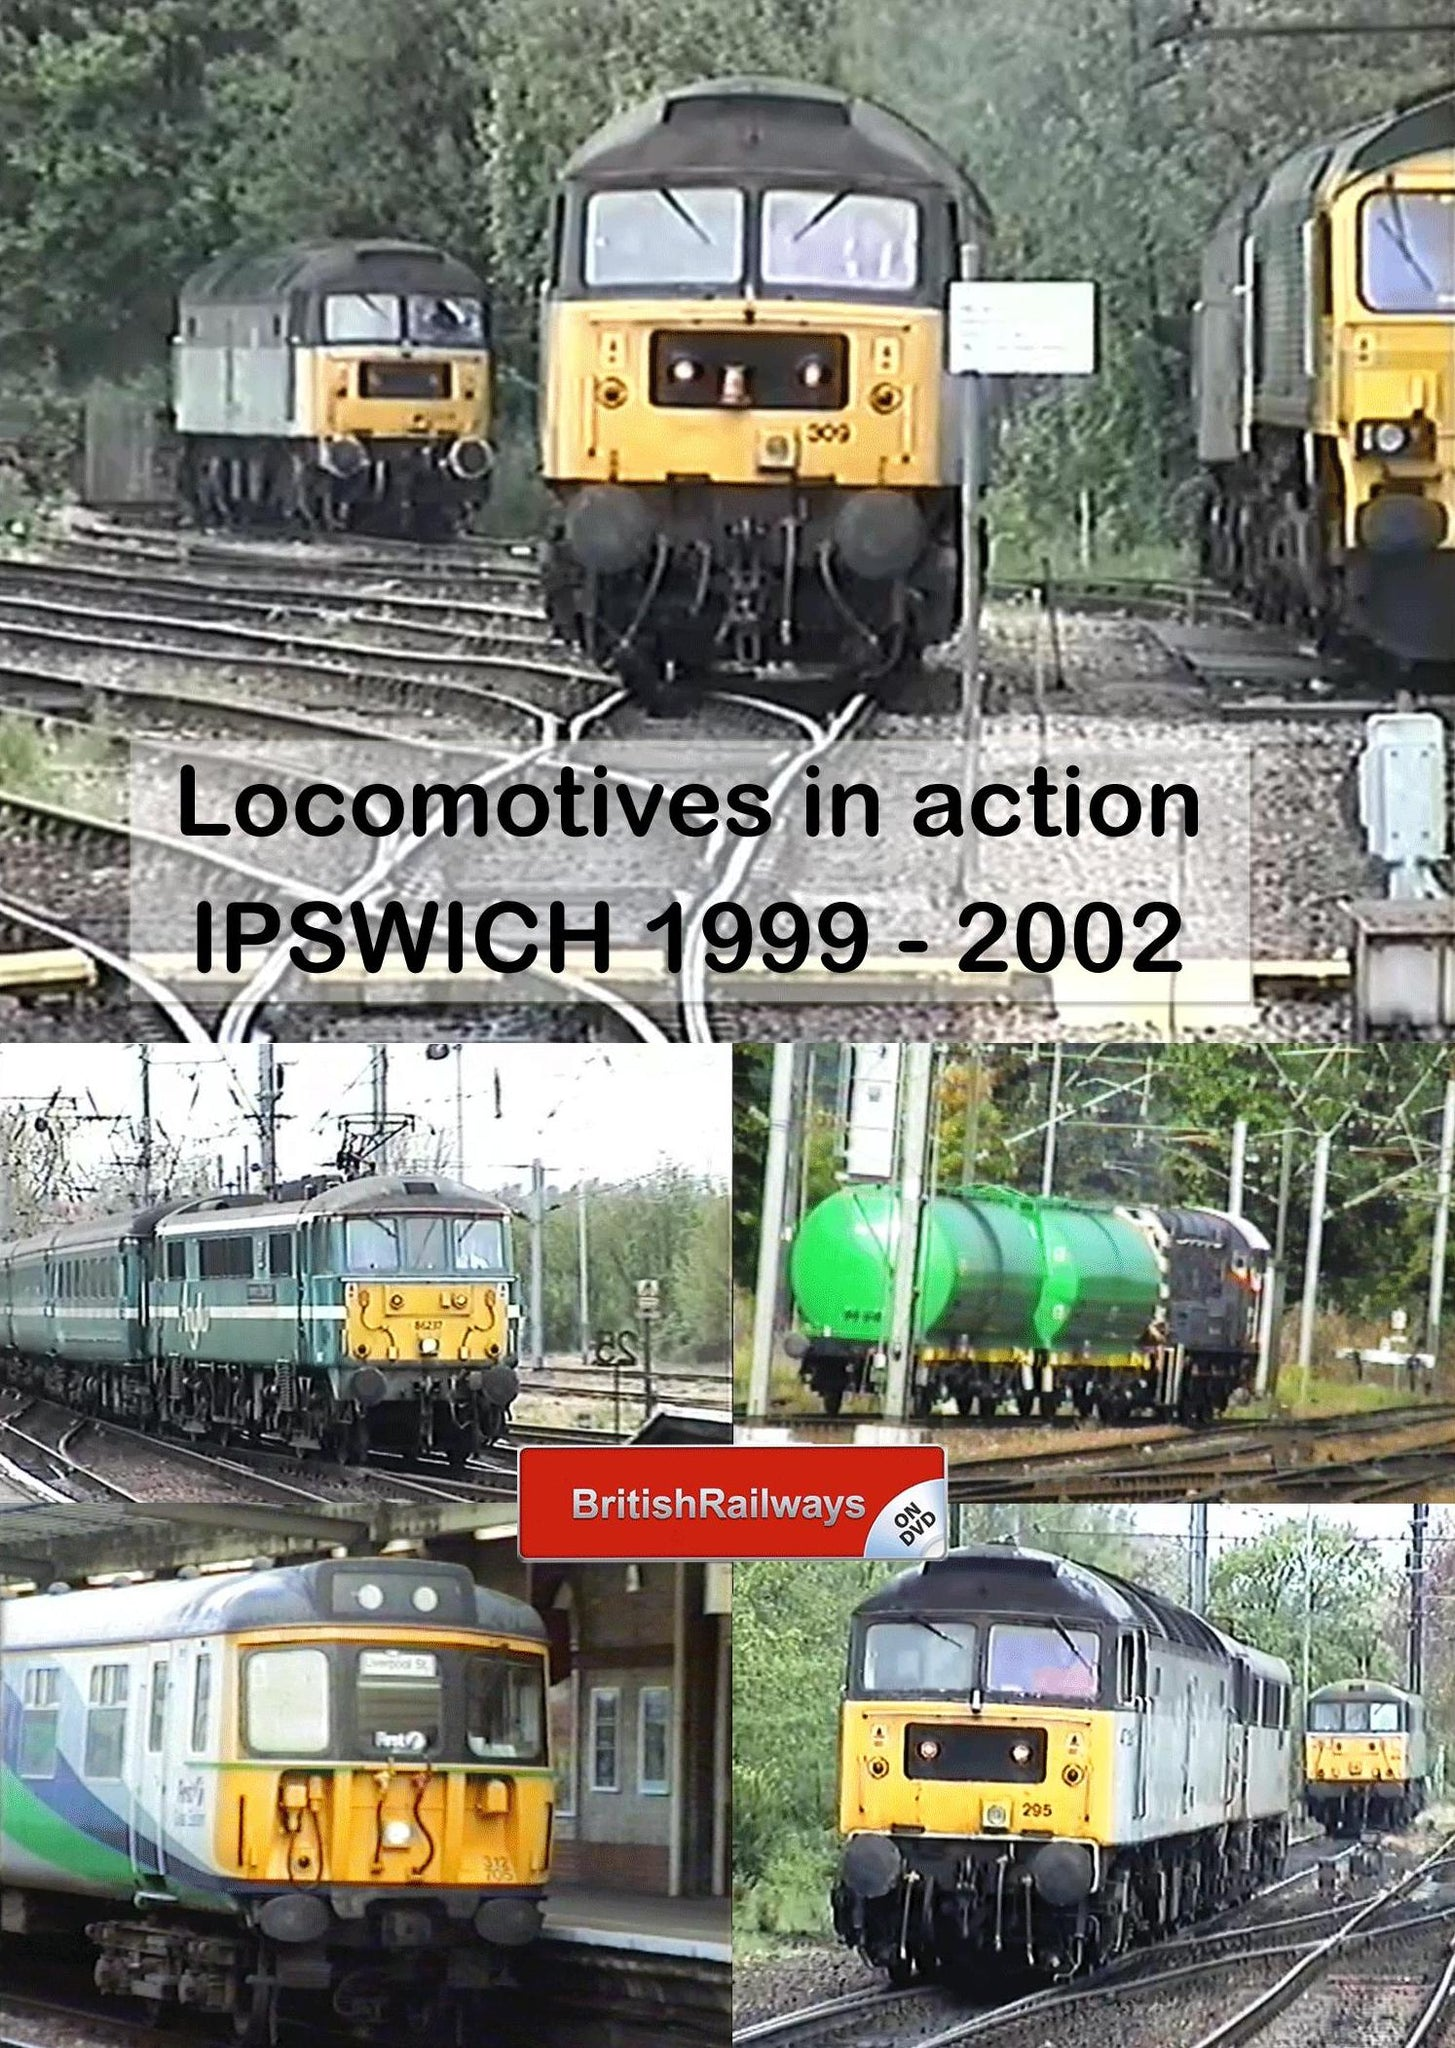 Locomotives in action at Ipswich 1999 - 2002 - Railway DVD